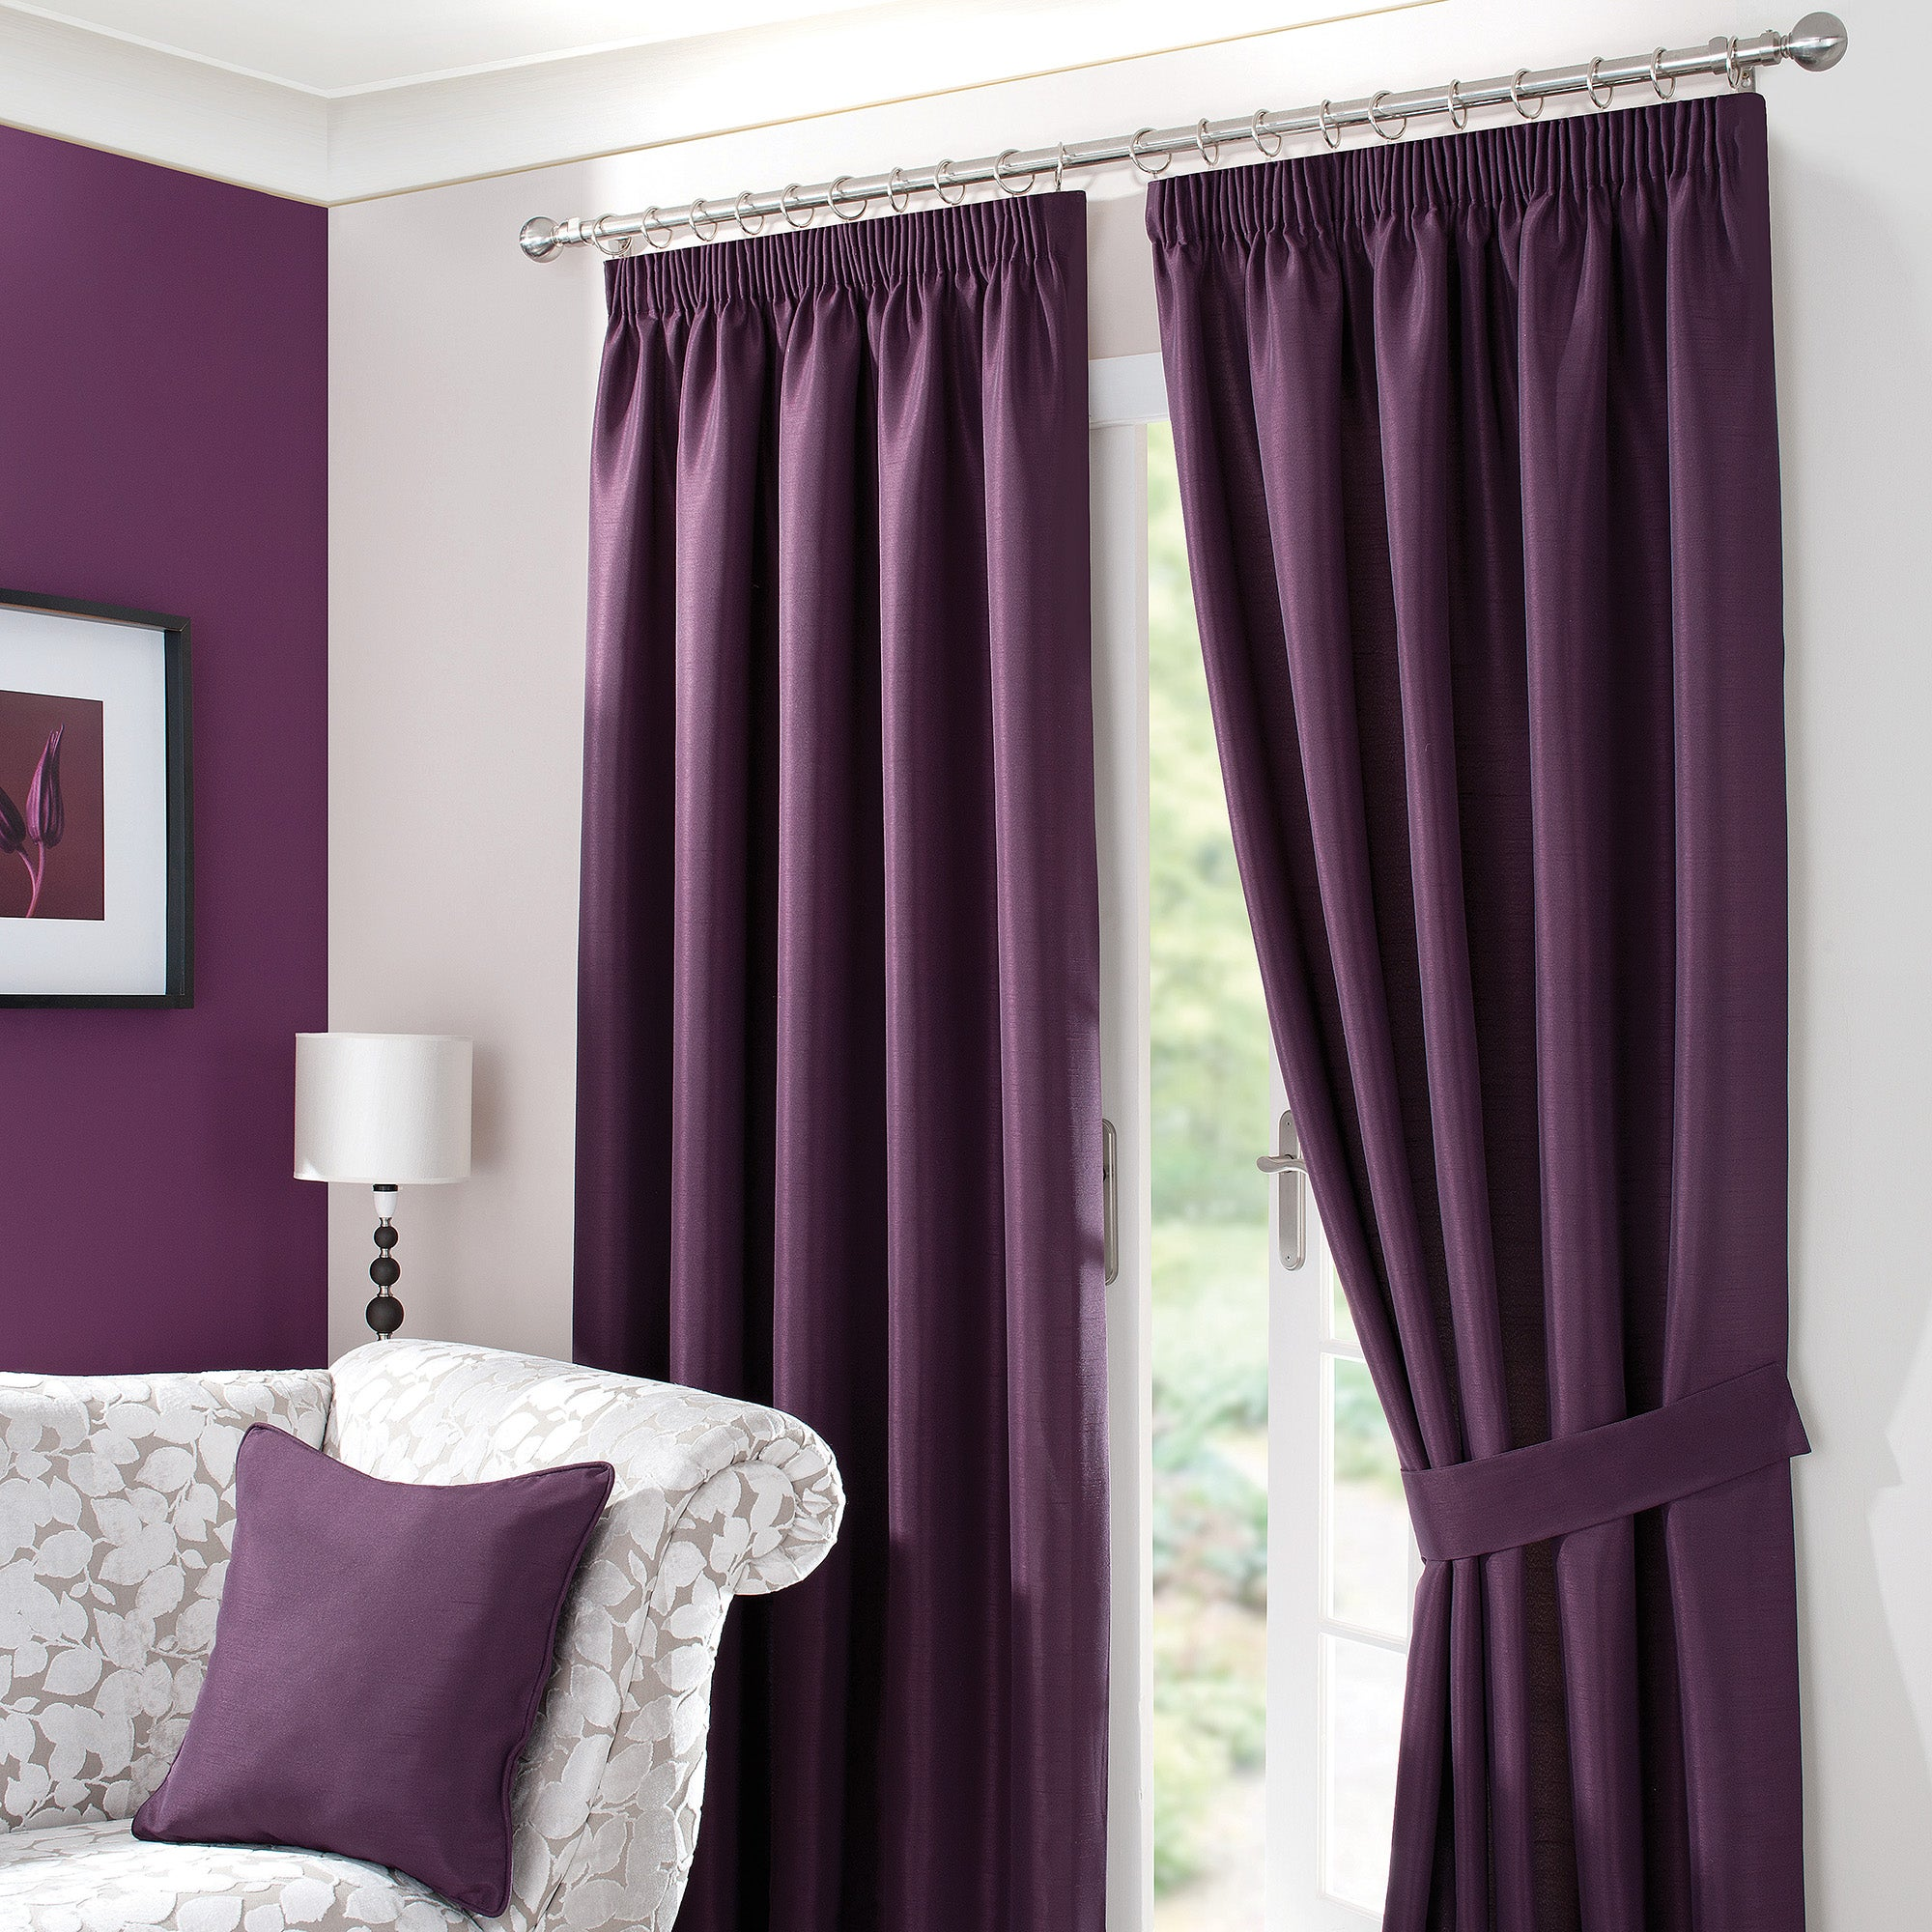 Blackcurrant Sorrento Lined Pencil Pleat Curtains